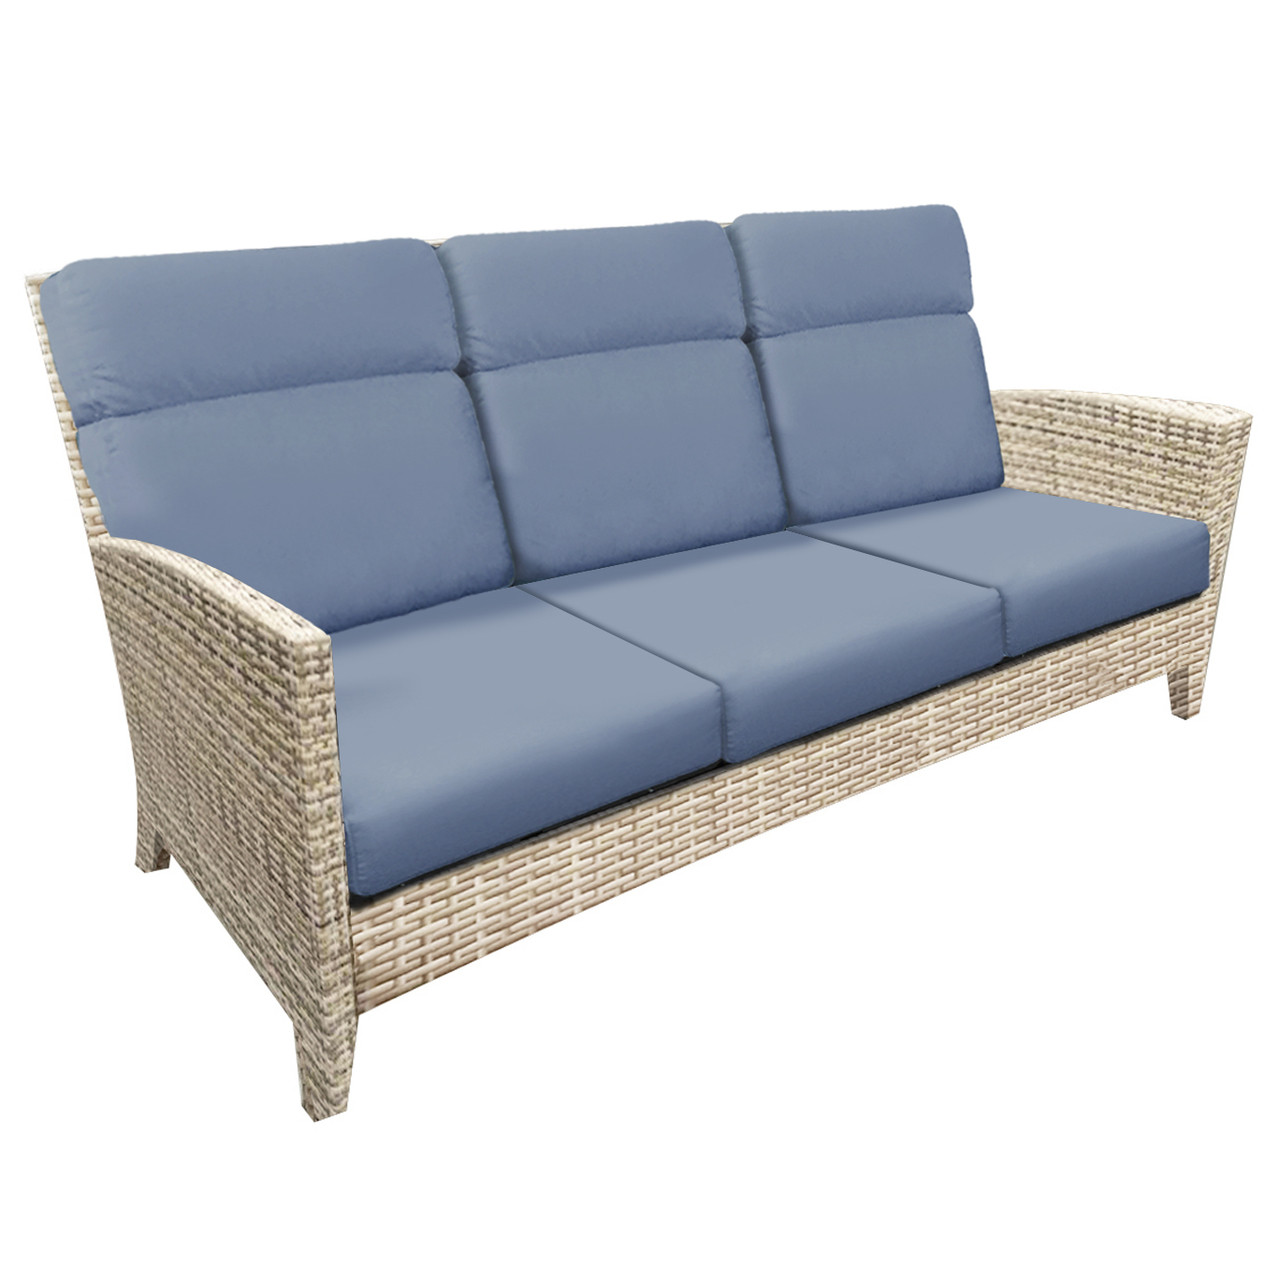 Forever Patio Cavalier Wicker 3 Seat Sofa by NorthCape International